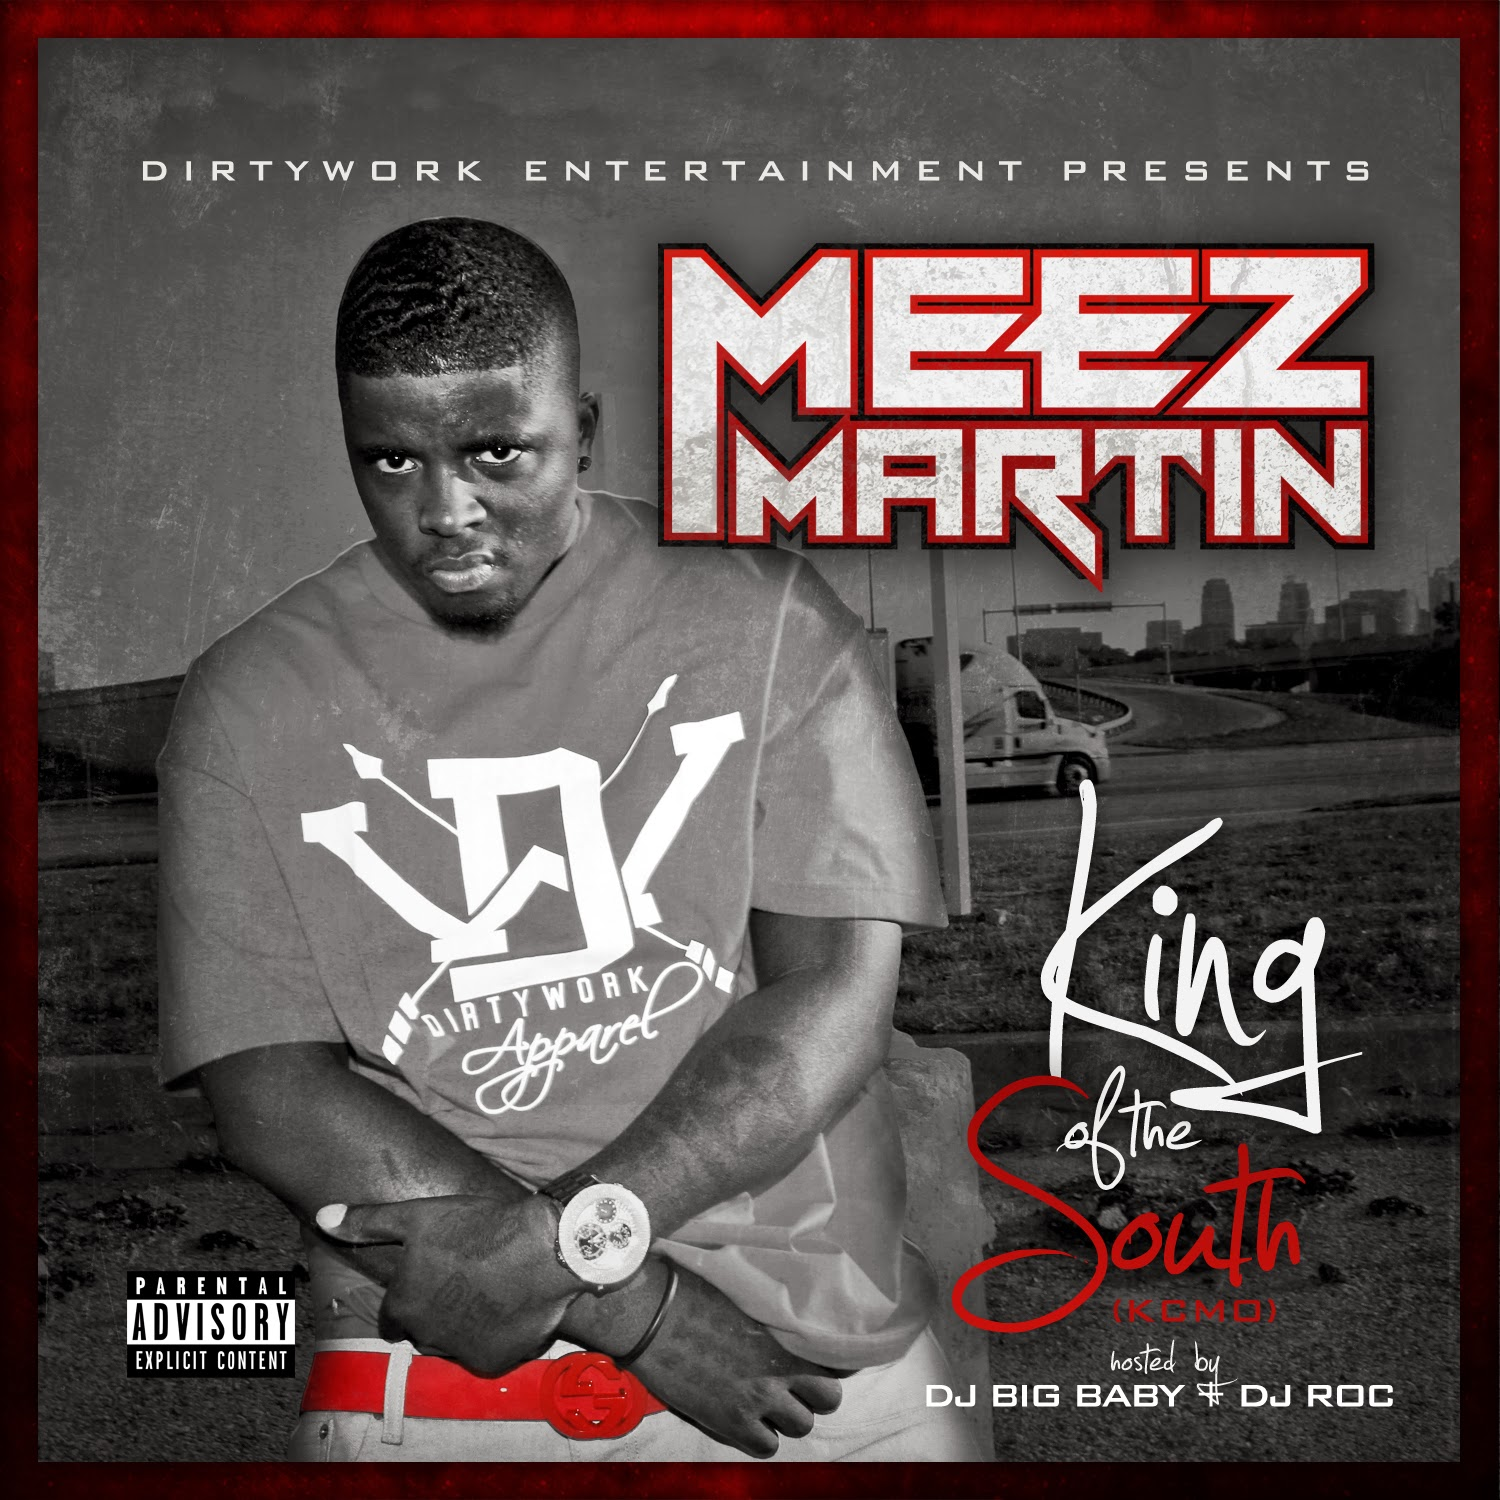 Meez Martin - King Of The South [2013]